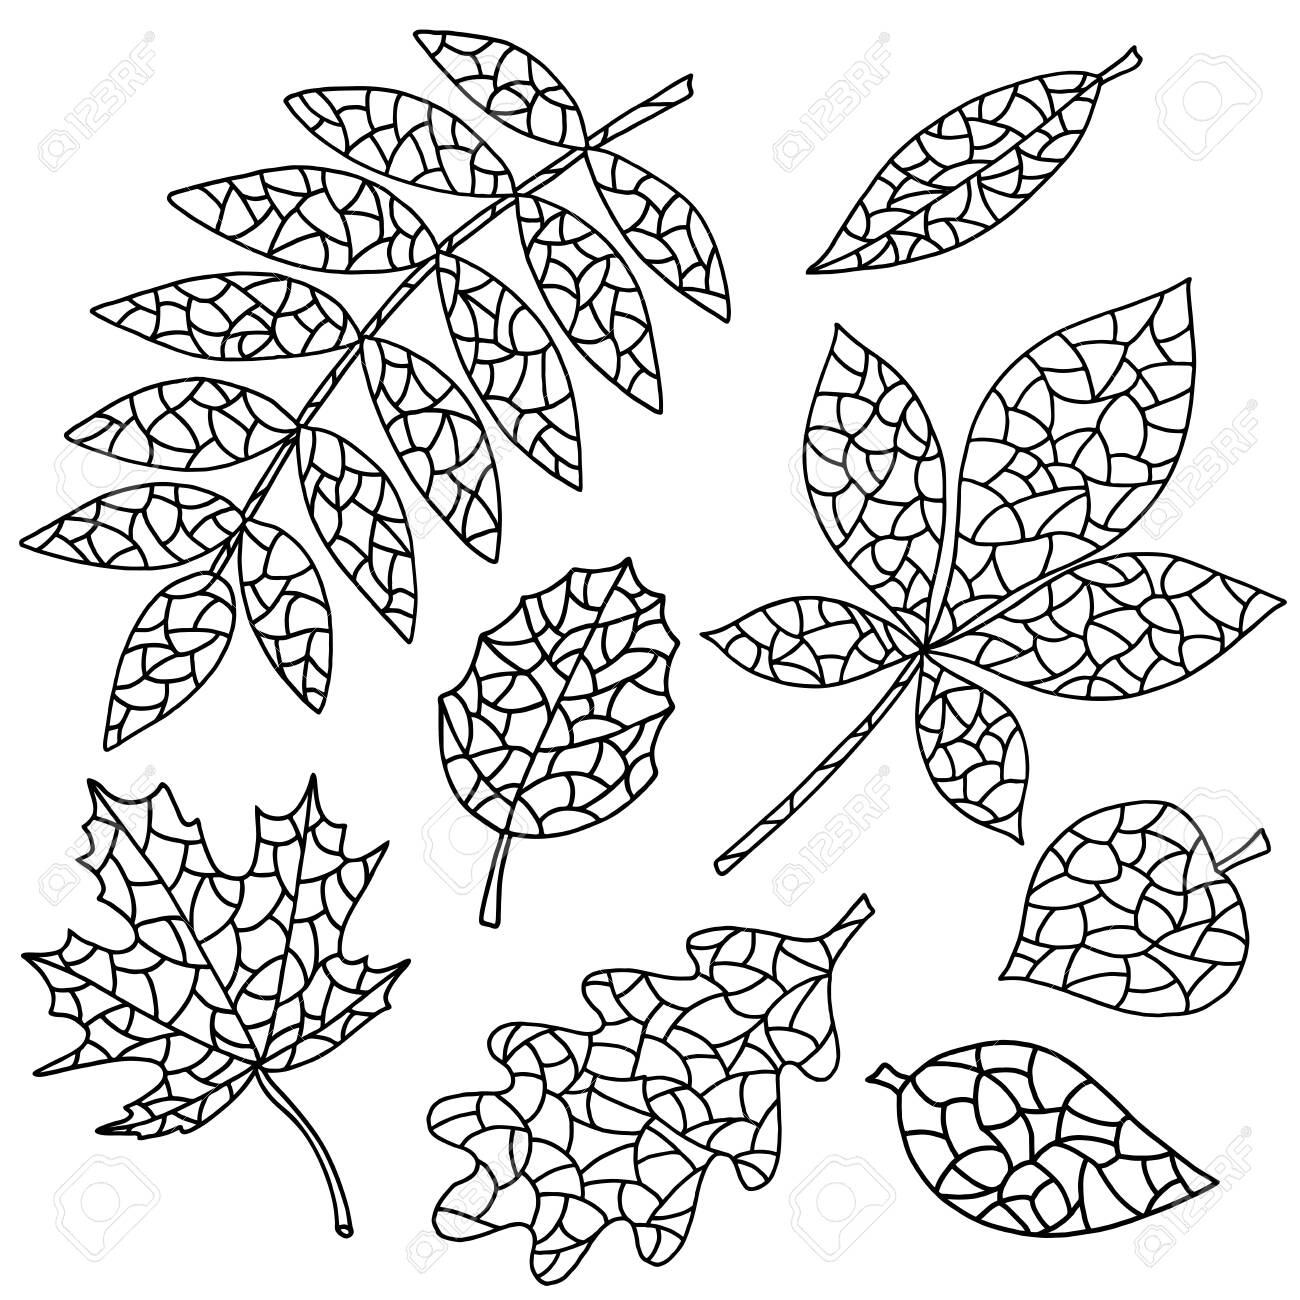 Set Of Abstract Autumn Leaves Coloring Pages For Kids And Adults